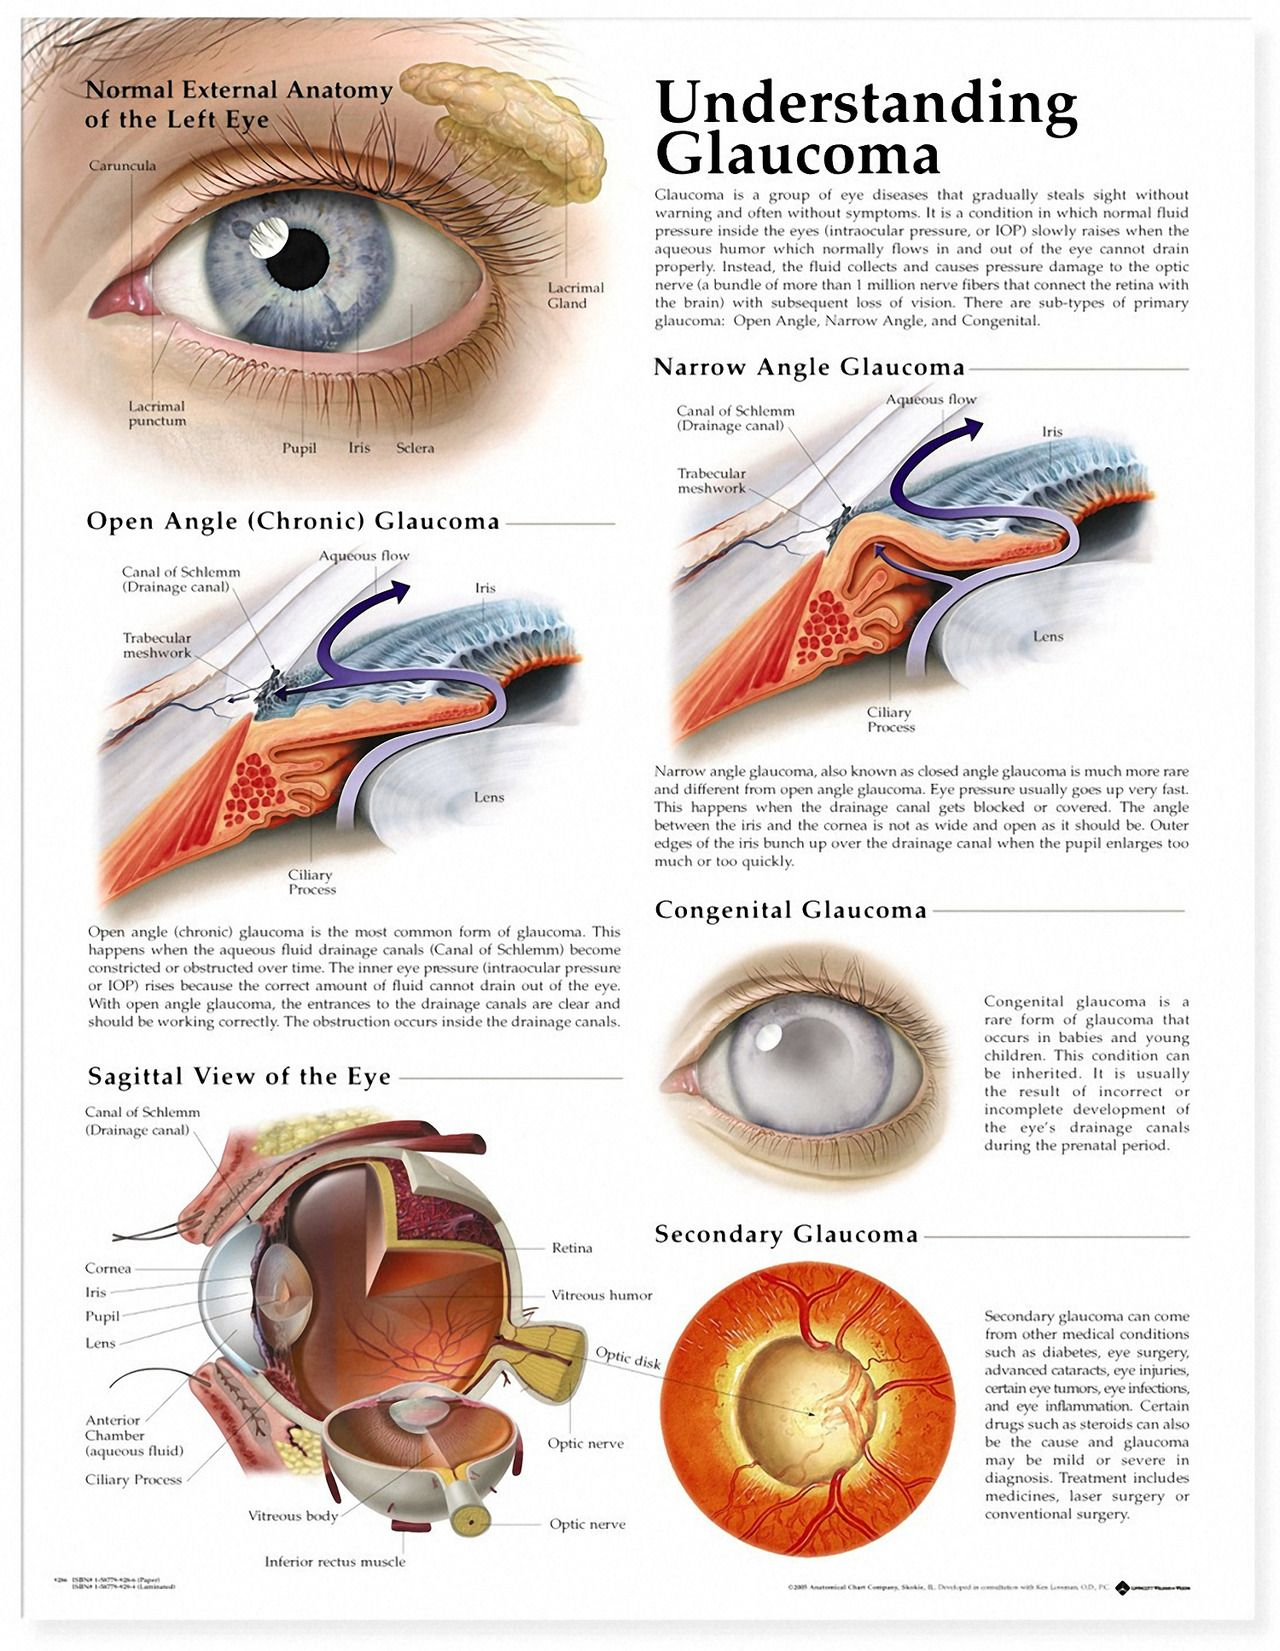 understanding the work of human eye A detailed study of the parts of the human eye and their working  in the coming sections, we will learn about the human eye, its various parts, and how these parts work in collaboration to enable us to see the world around us main parts of the human eye sclera.